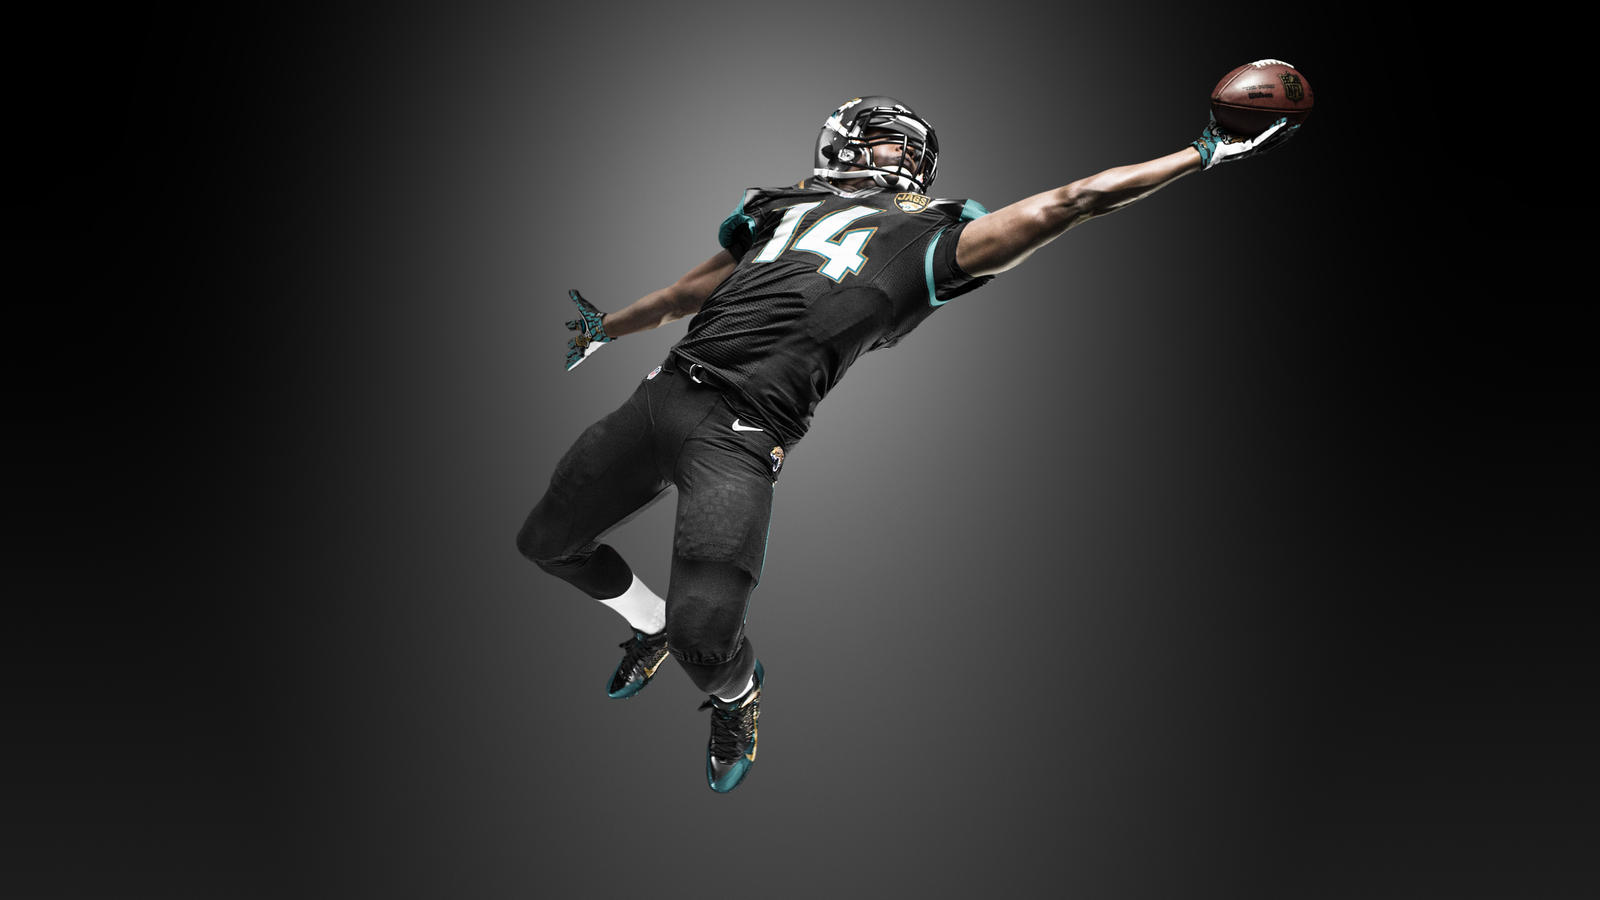 buy online f8118 0bb3d Jacksonville Jaguars and Nike Unveil New Uniform Design for ...